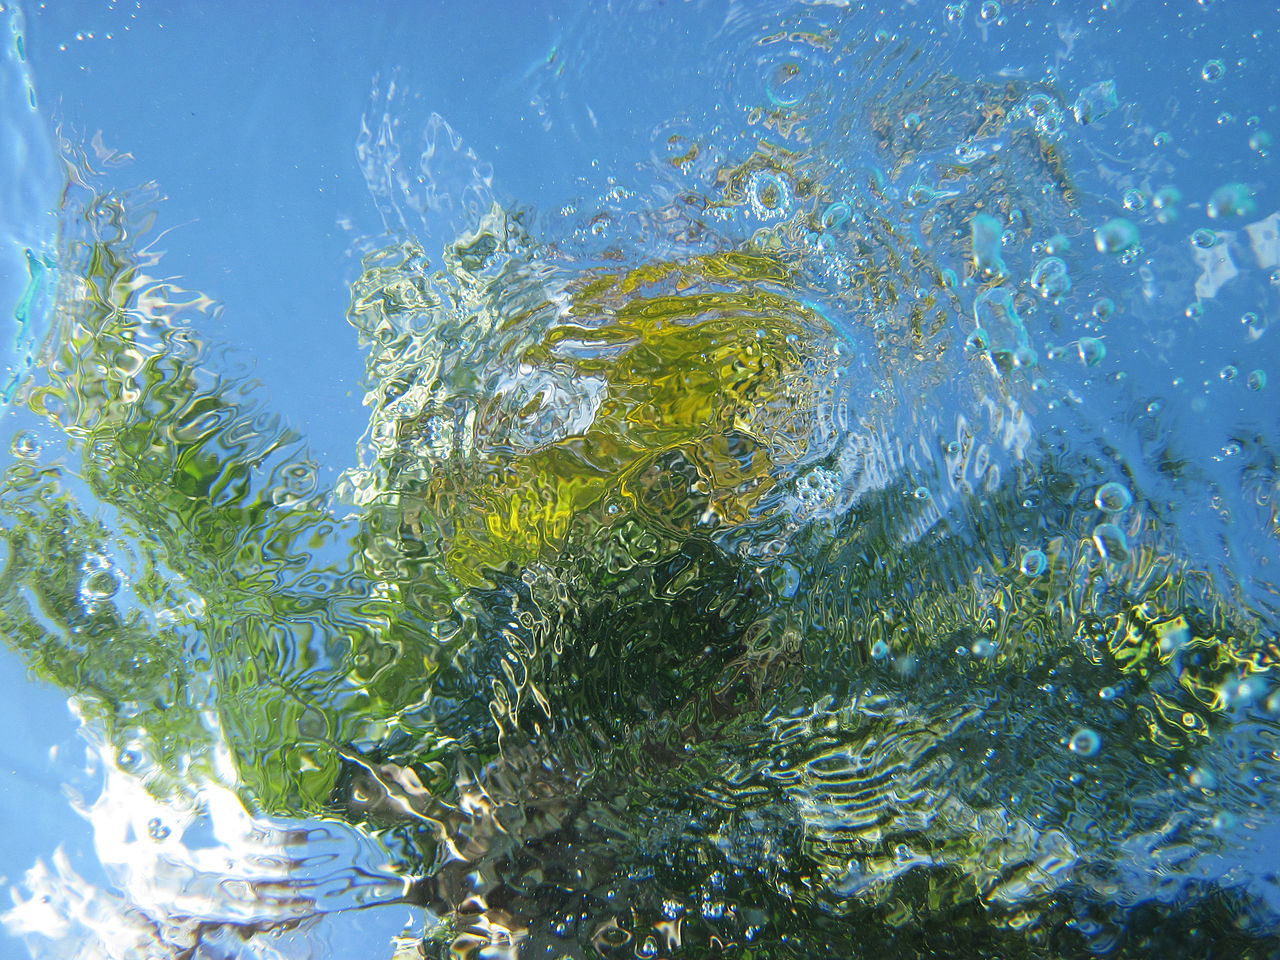 http://upload.wikimedia.org/wikipedia/commons/thumb/4/40/Underwater_surface_ripples.JPG/1280px-Underwater_surface_ripples.JPG